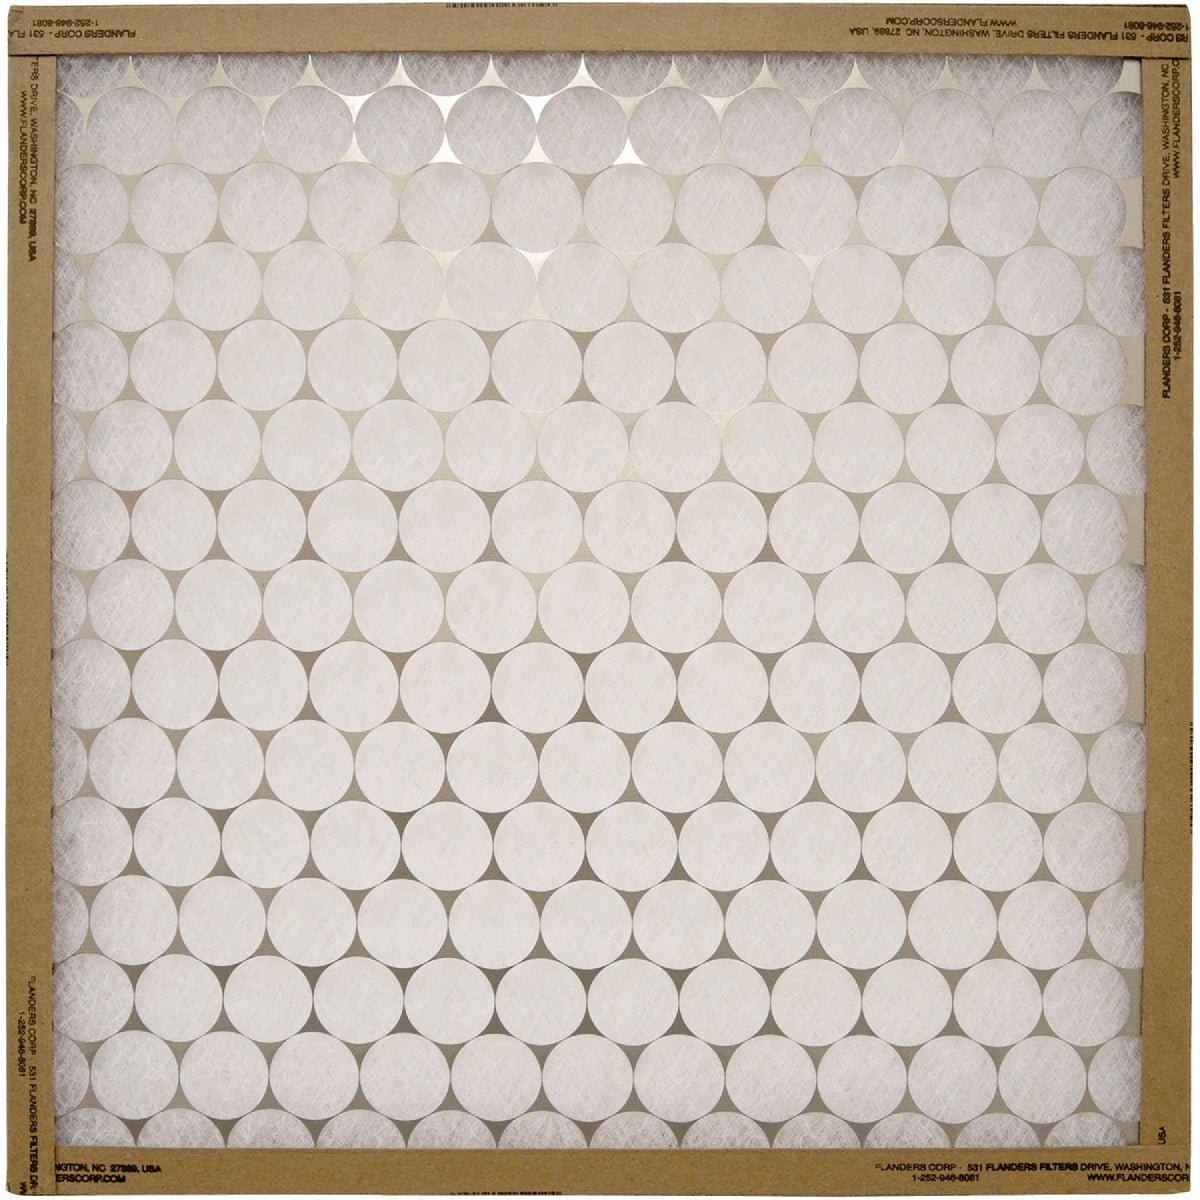 20X30 FURNACE FILTER - 10255.012030 by Flanders Corp